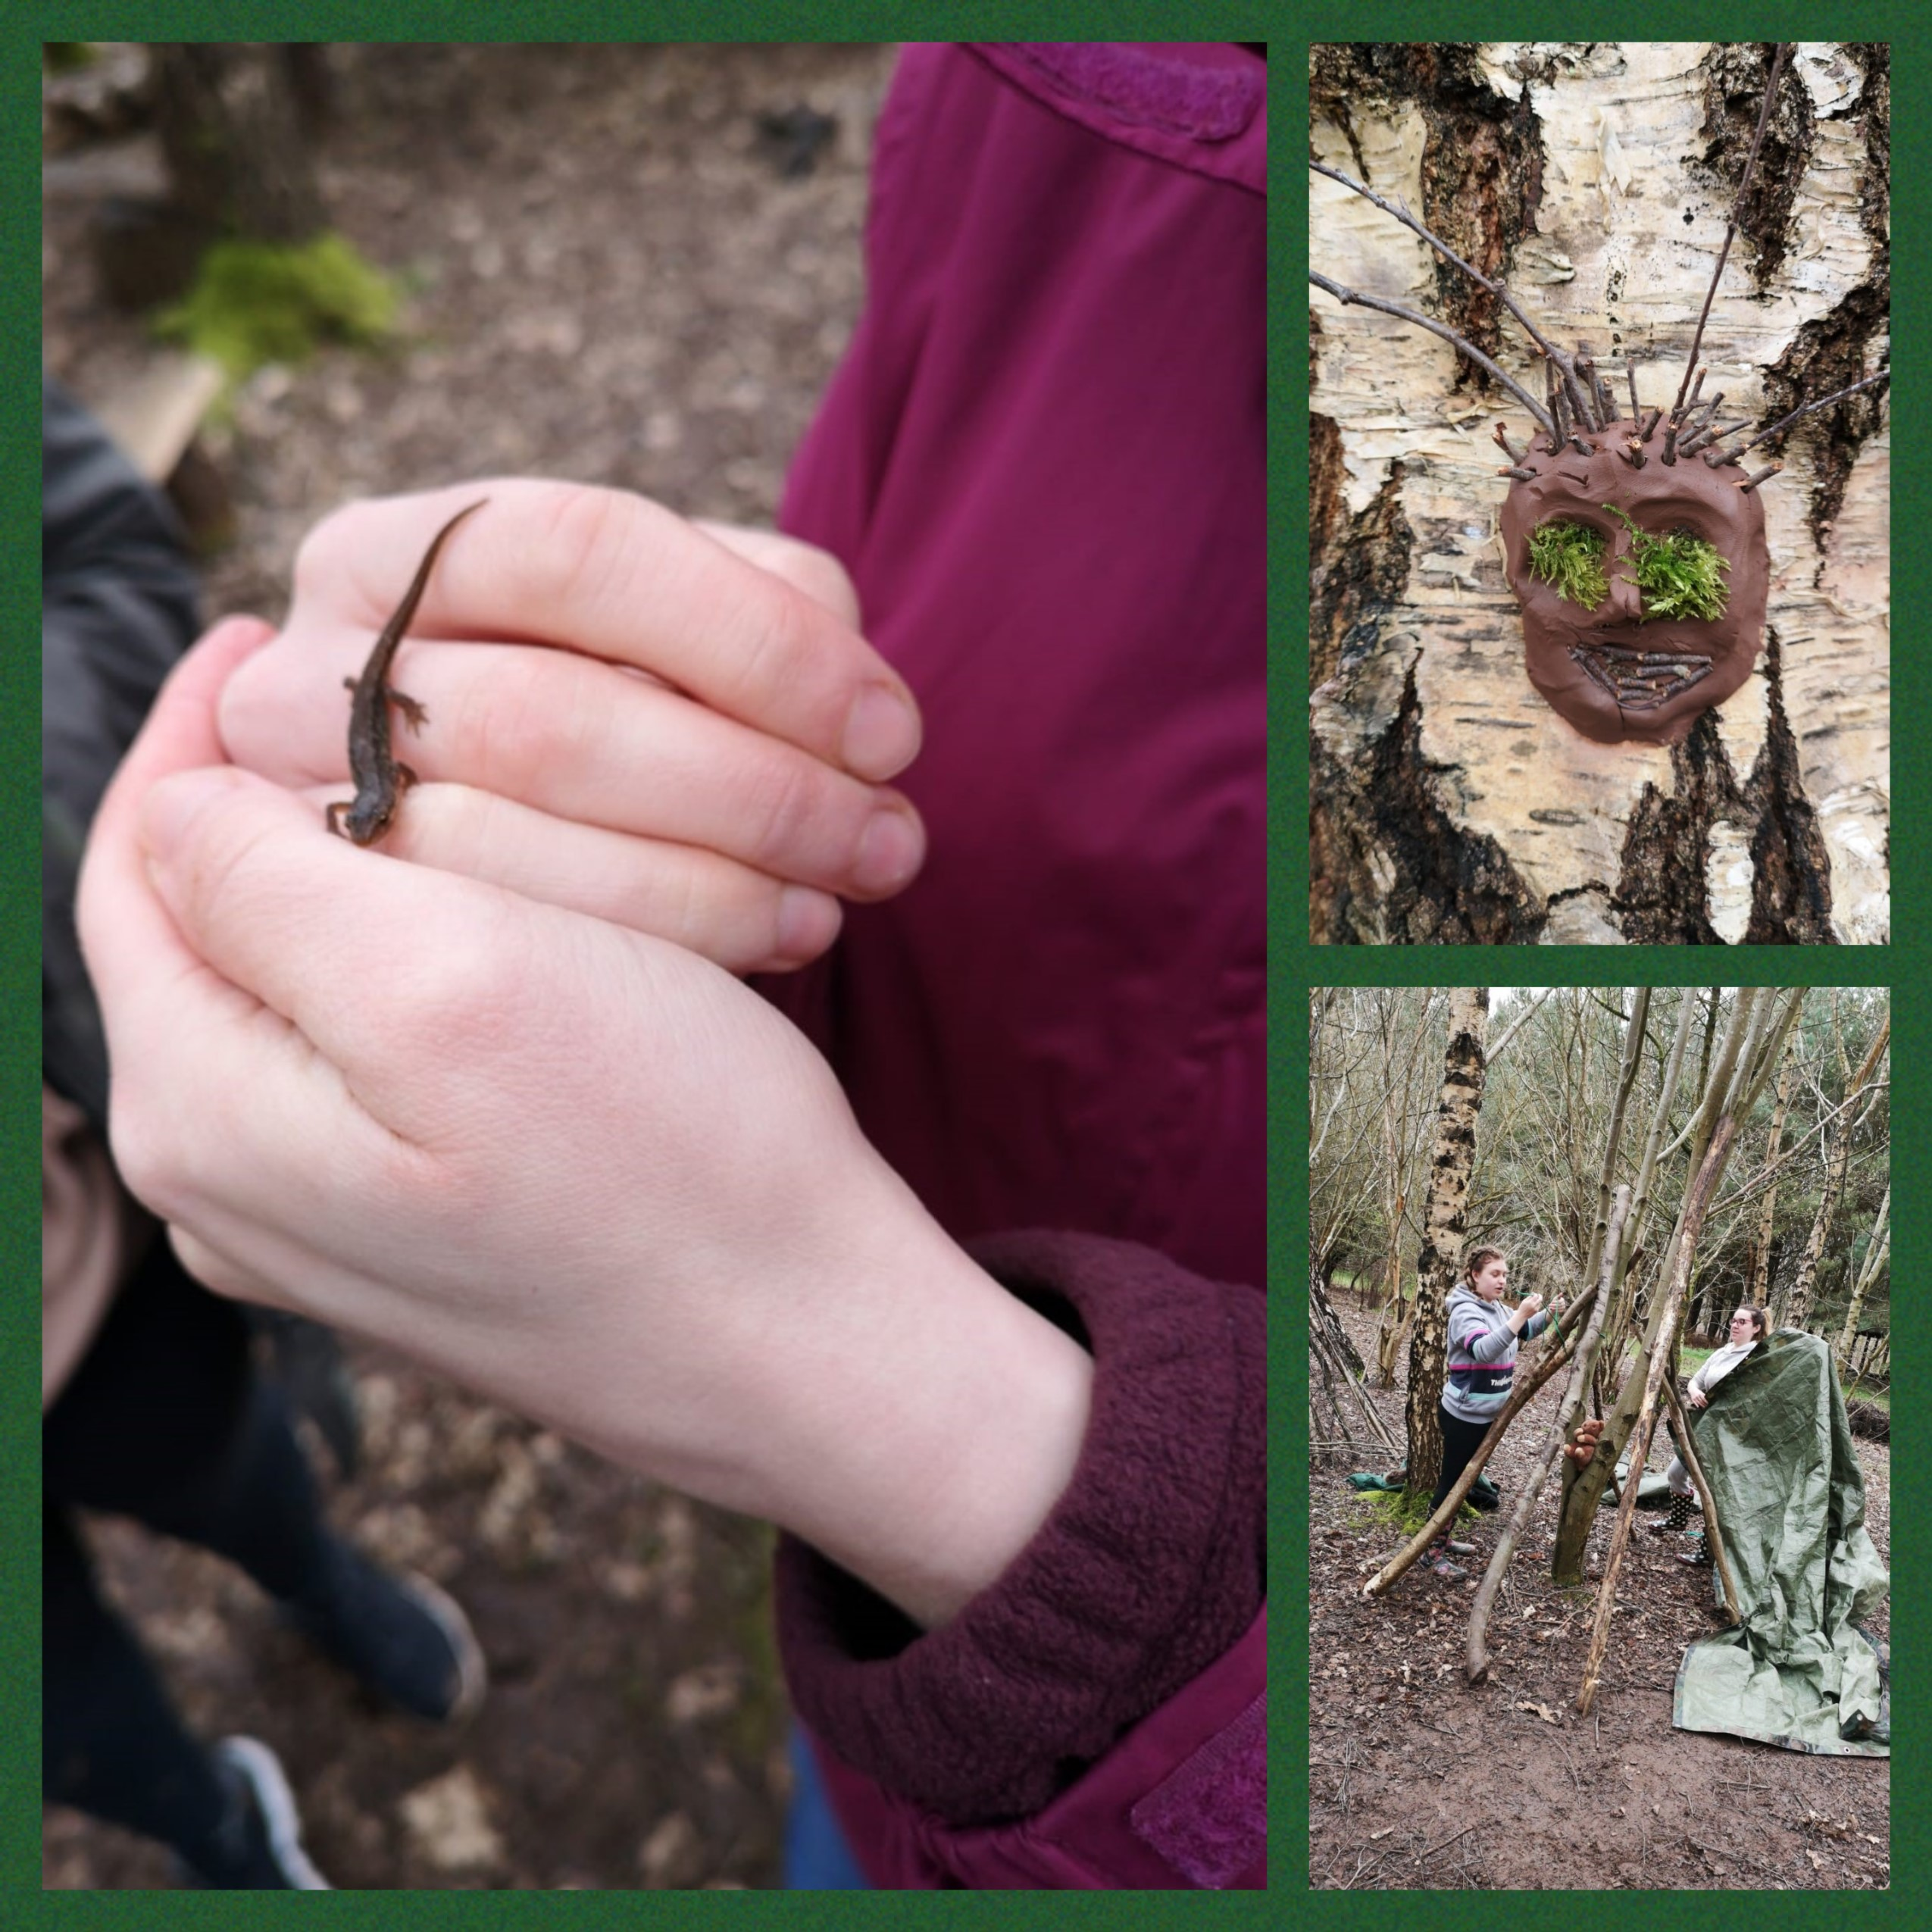 As part of the on going training and development at Shooting Stars, this Saturday staff from each of our nurseries took part in an amazing training opportunity at a unique field studies centre called Bishops Wood in Worcestershire.